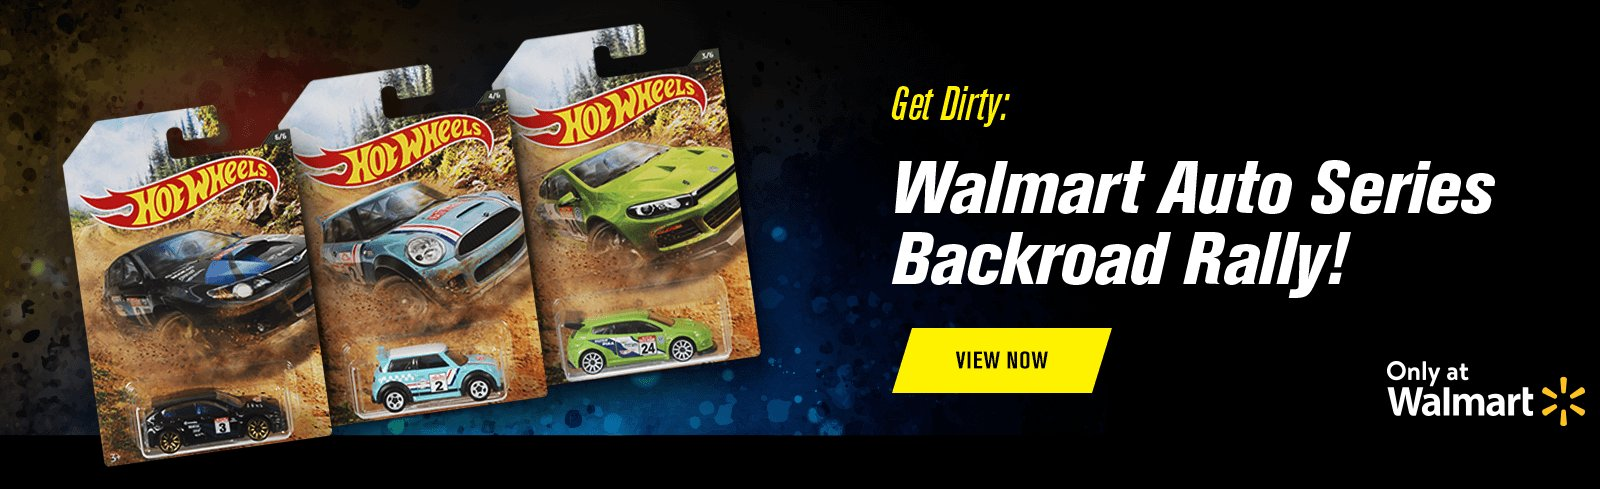 Get Dirty: Walmart Auto Series Backroad Rally!